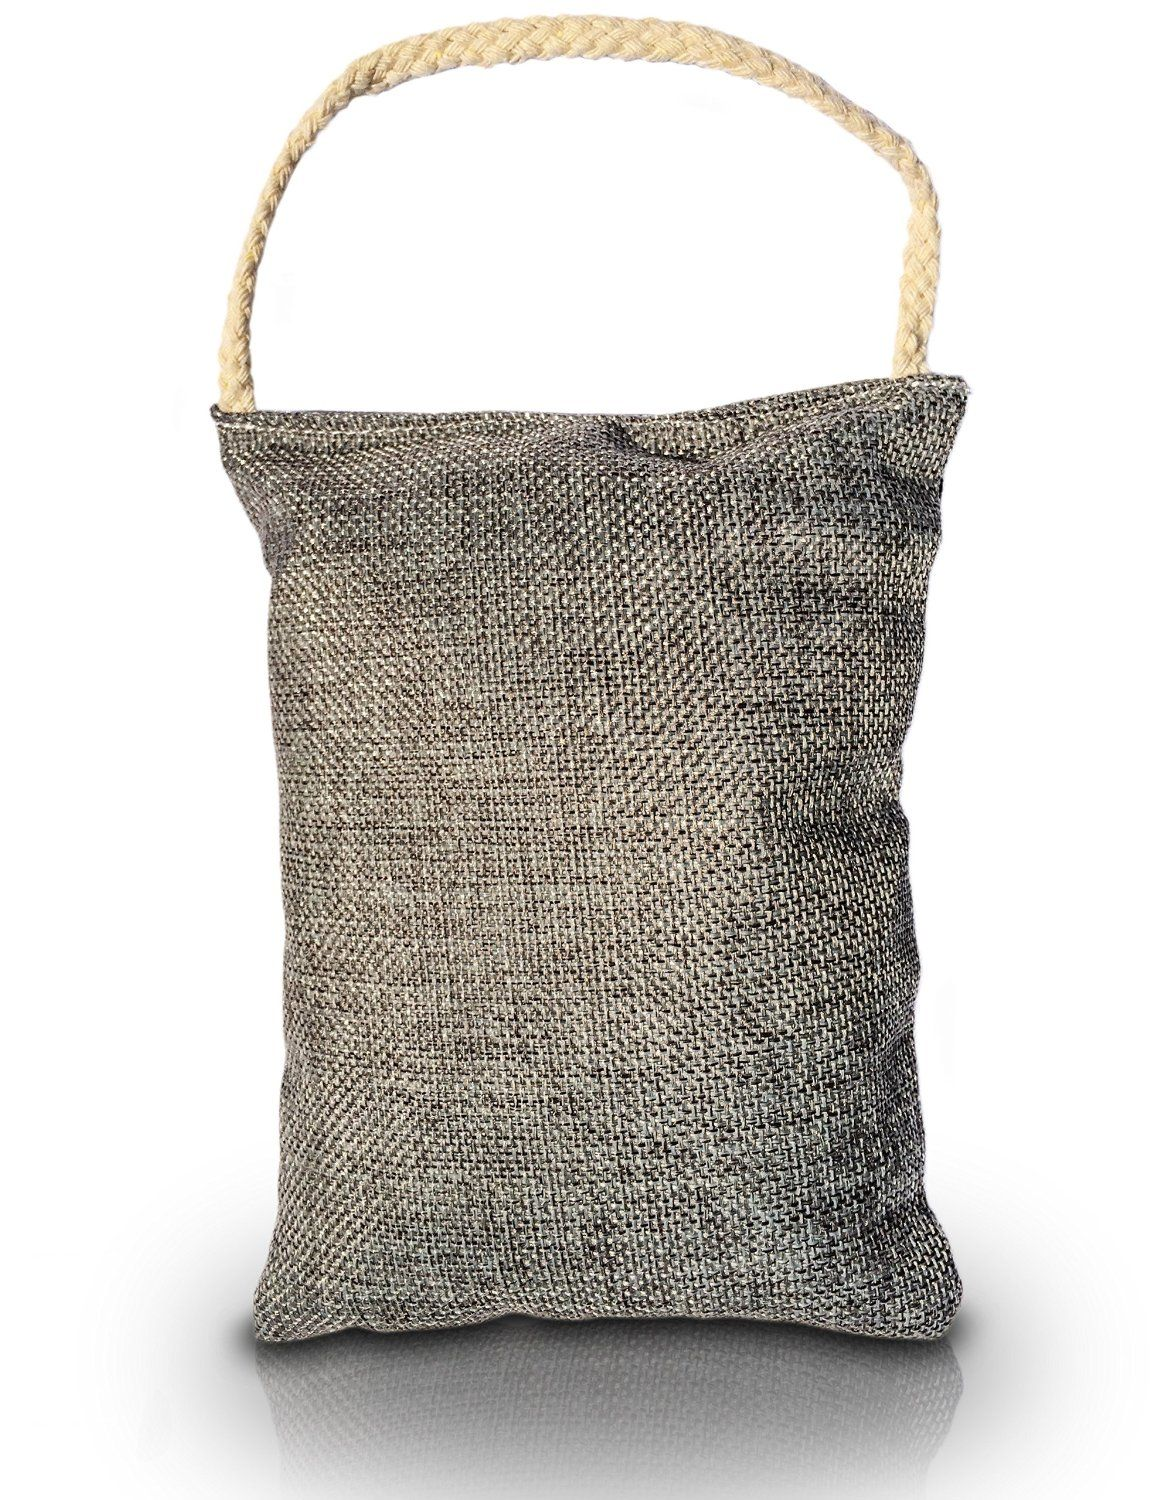 NATURAL Air Purifying Bag Bamboo Charcoal